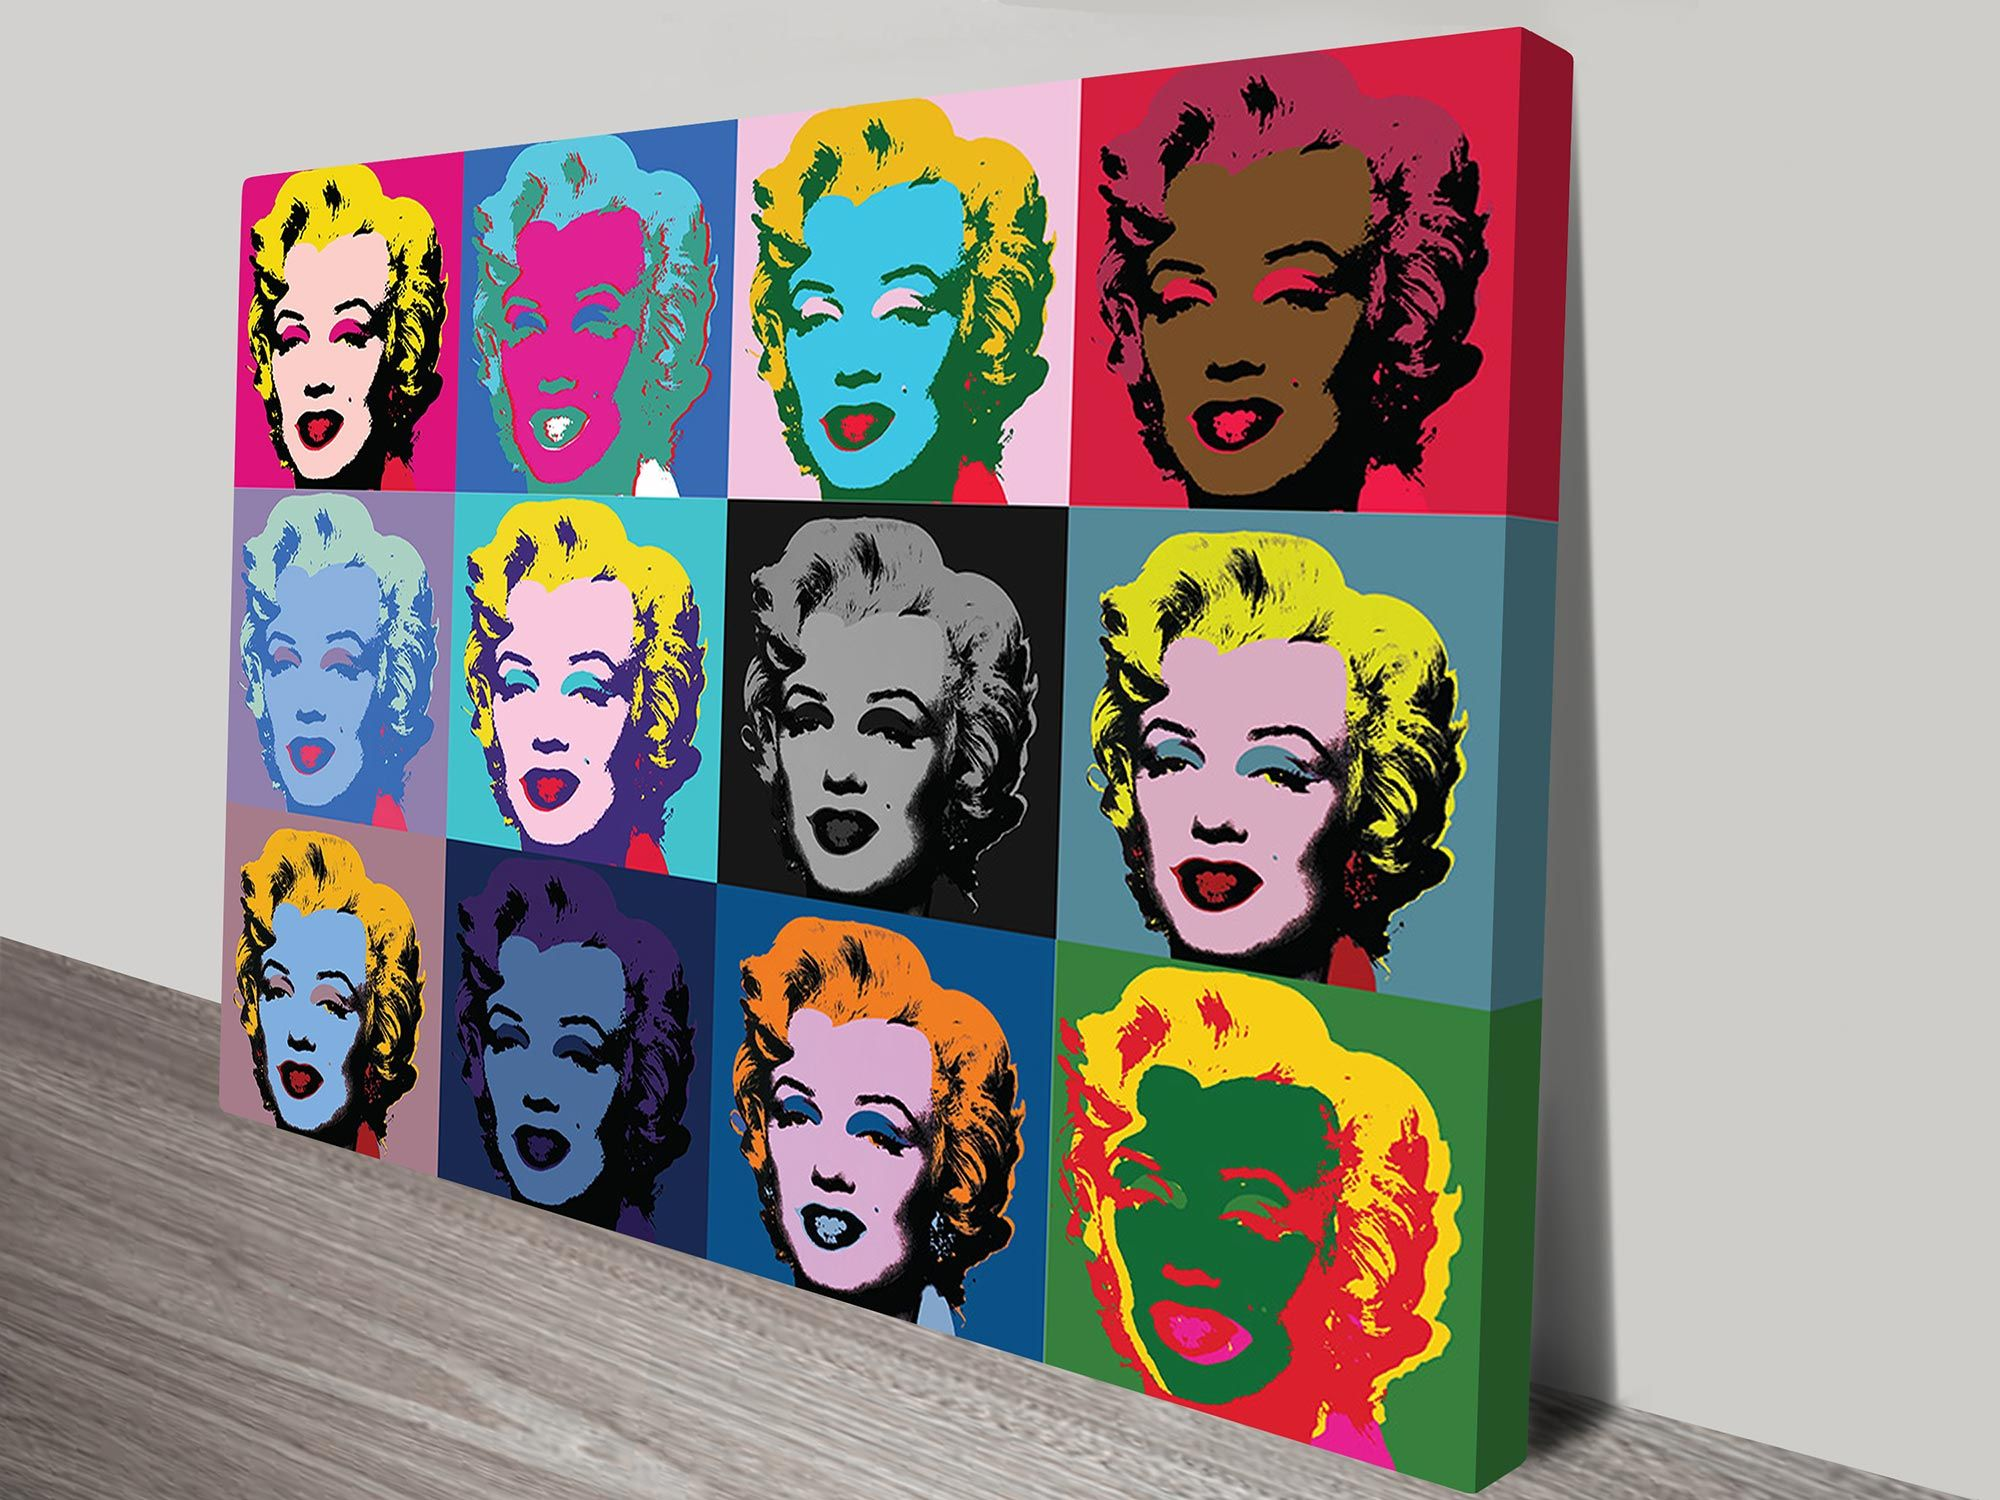 andy warhol's famous marilyn monroe painting Marilyn monroe, 1968 by andy warhol pop art portrait marilyn monroe, 1968 by andy warhol pop art portrait % 1/ 1 / () add to album  andy warhol famous works.